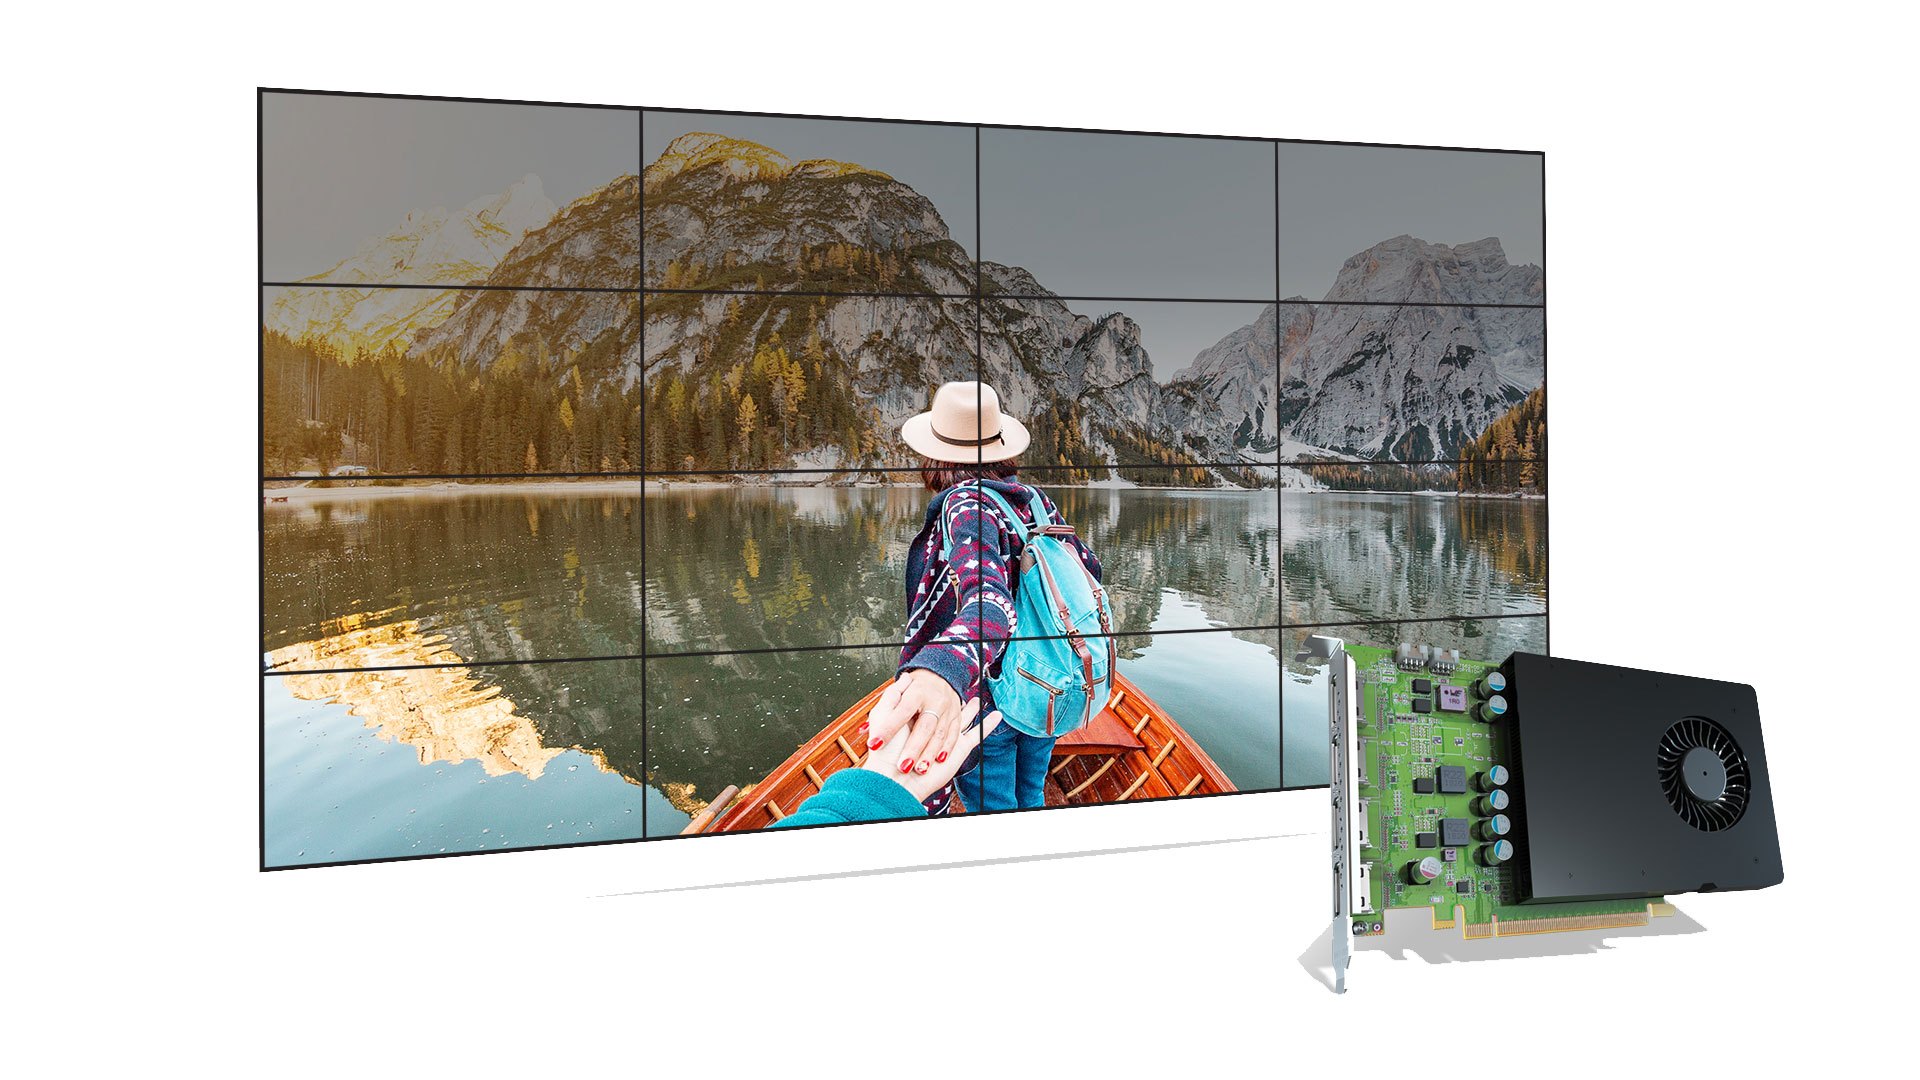 D1450 Graphics Cards Video Wall